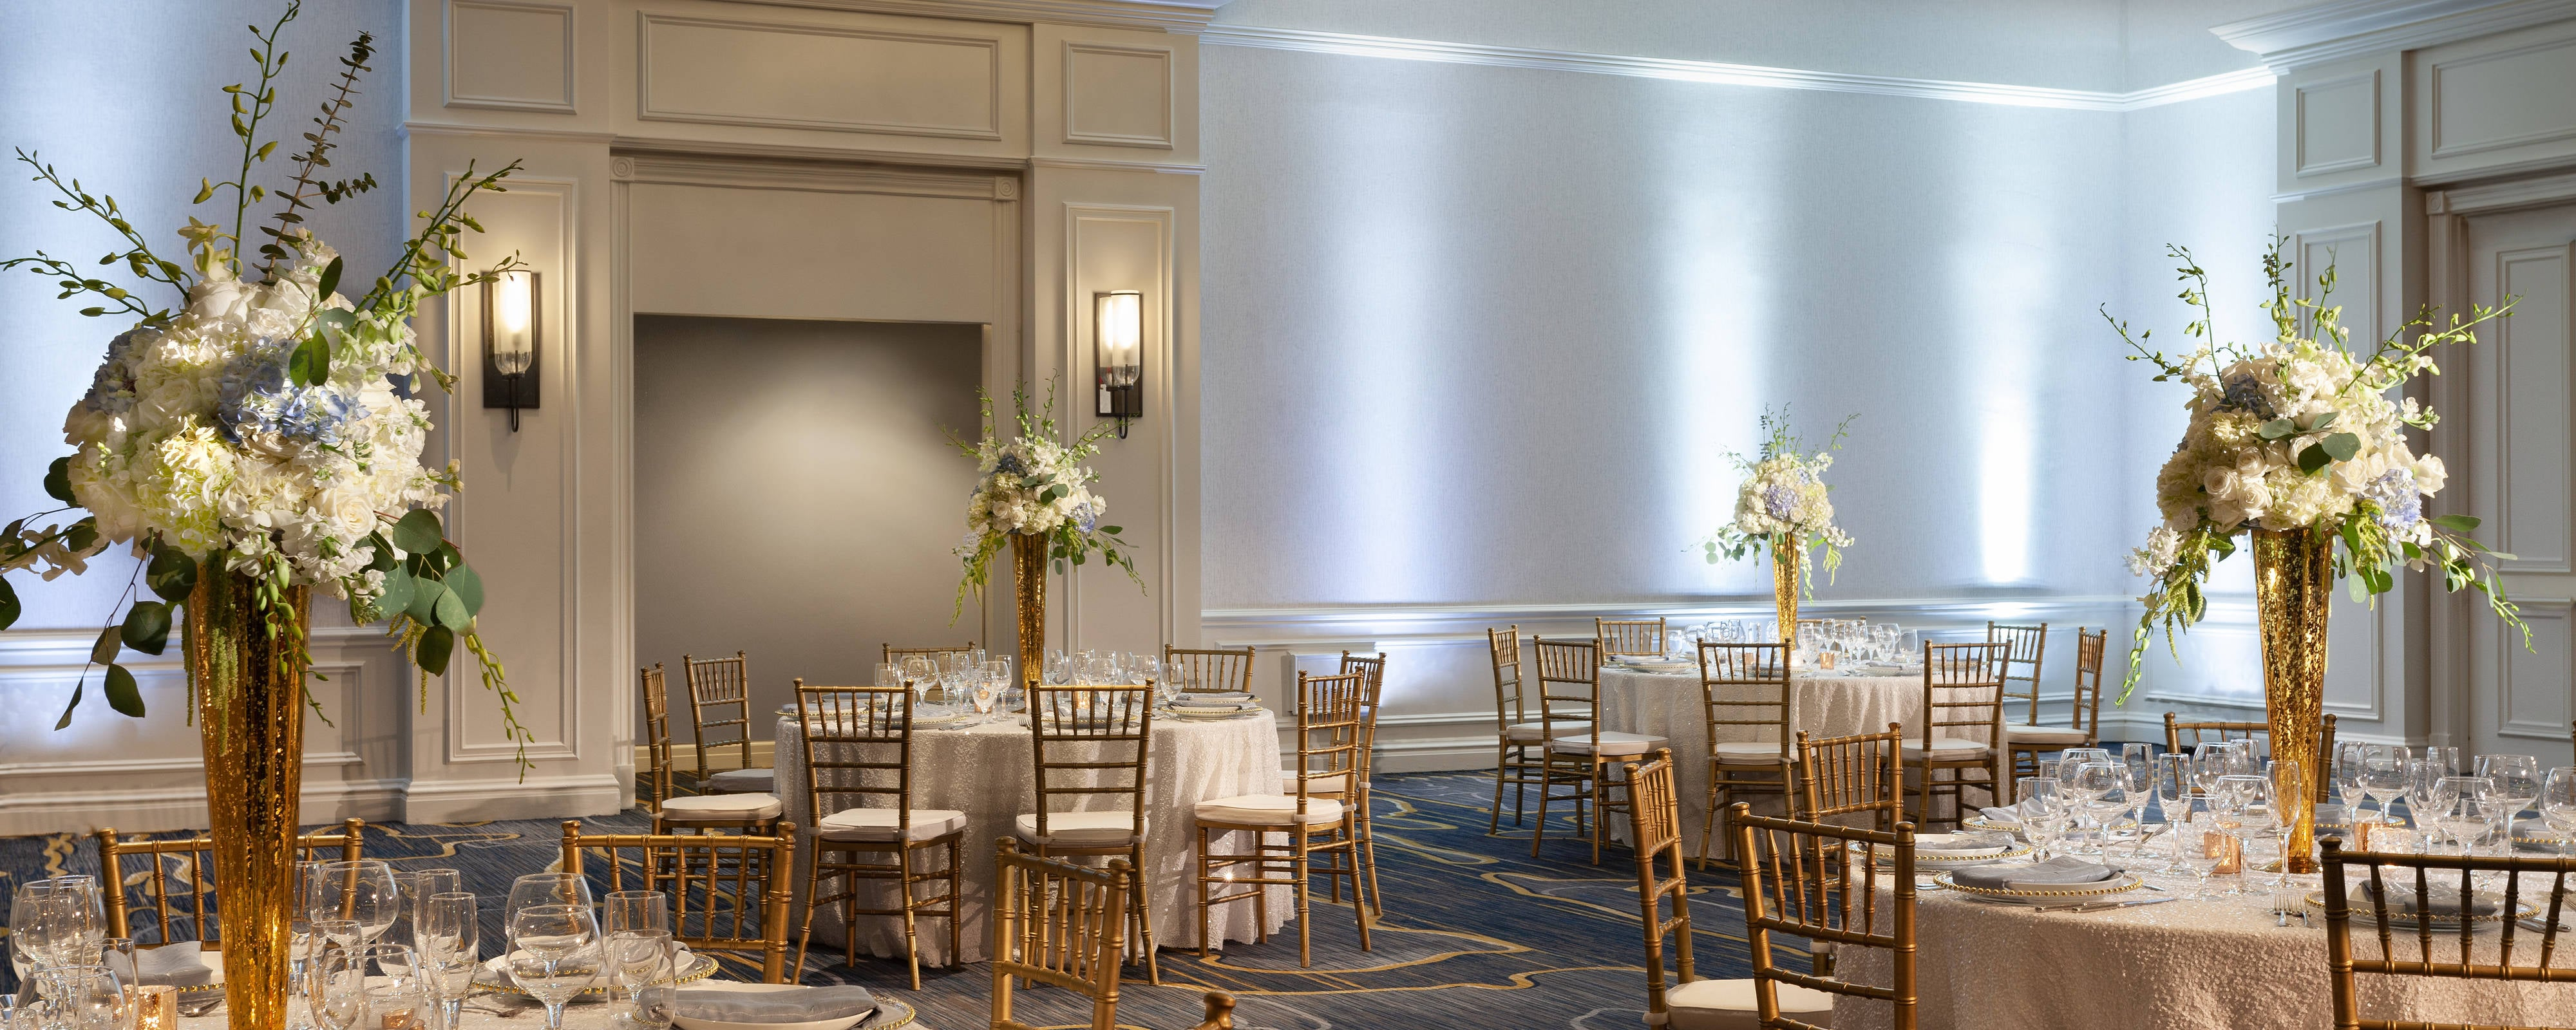 downtown tampa florida wedding venues tampa marriott. Black Bedroom Furniture Sets. Home Design Ideas